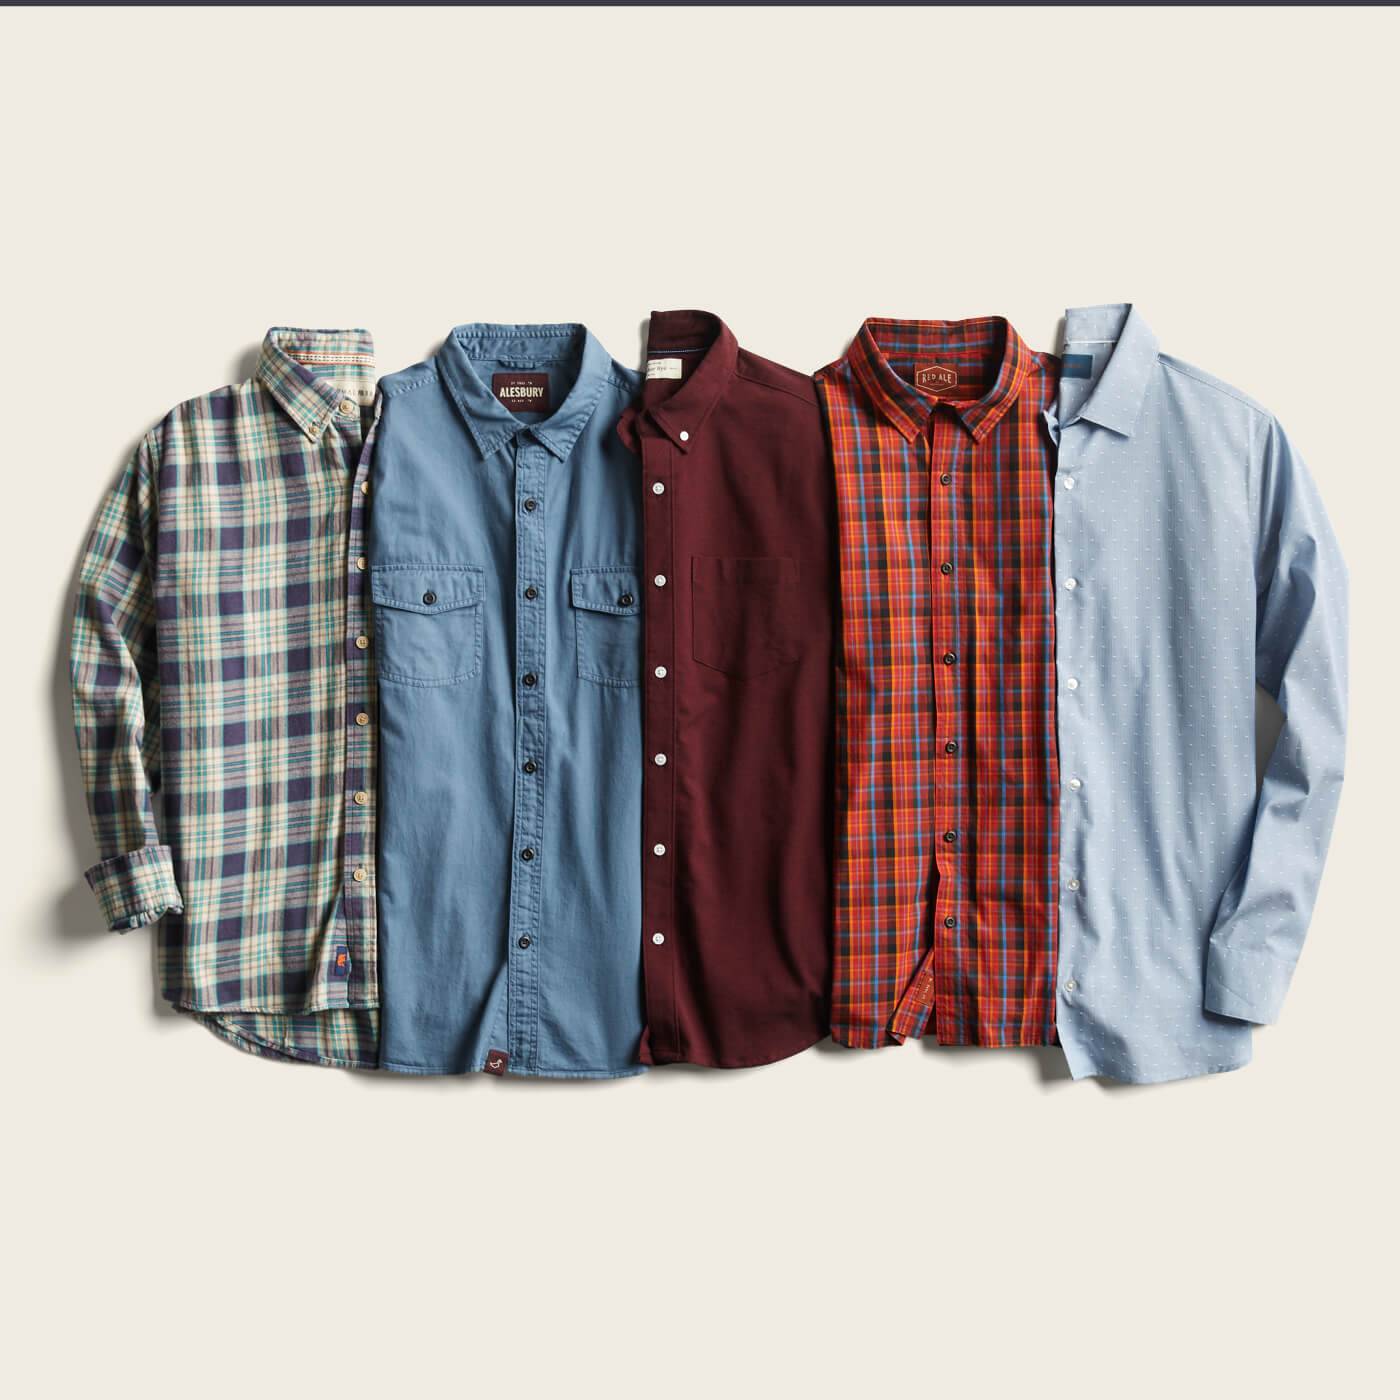 How We Find The Best Shirt For Your Build Stitch Fix Men